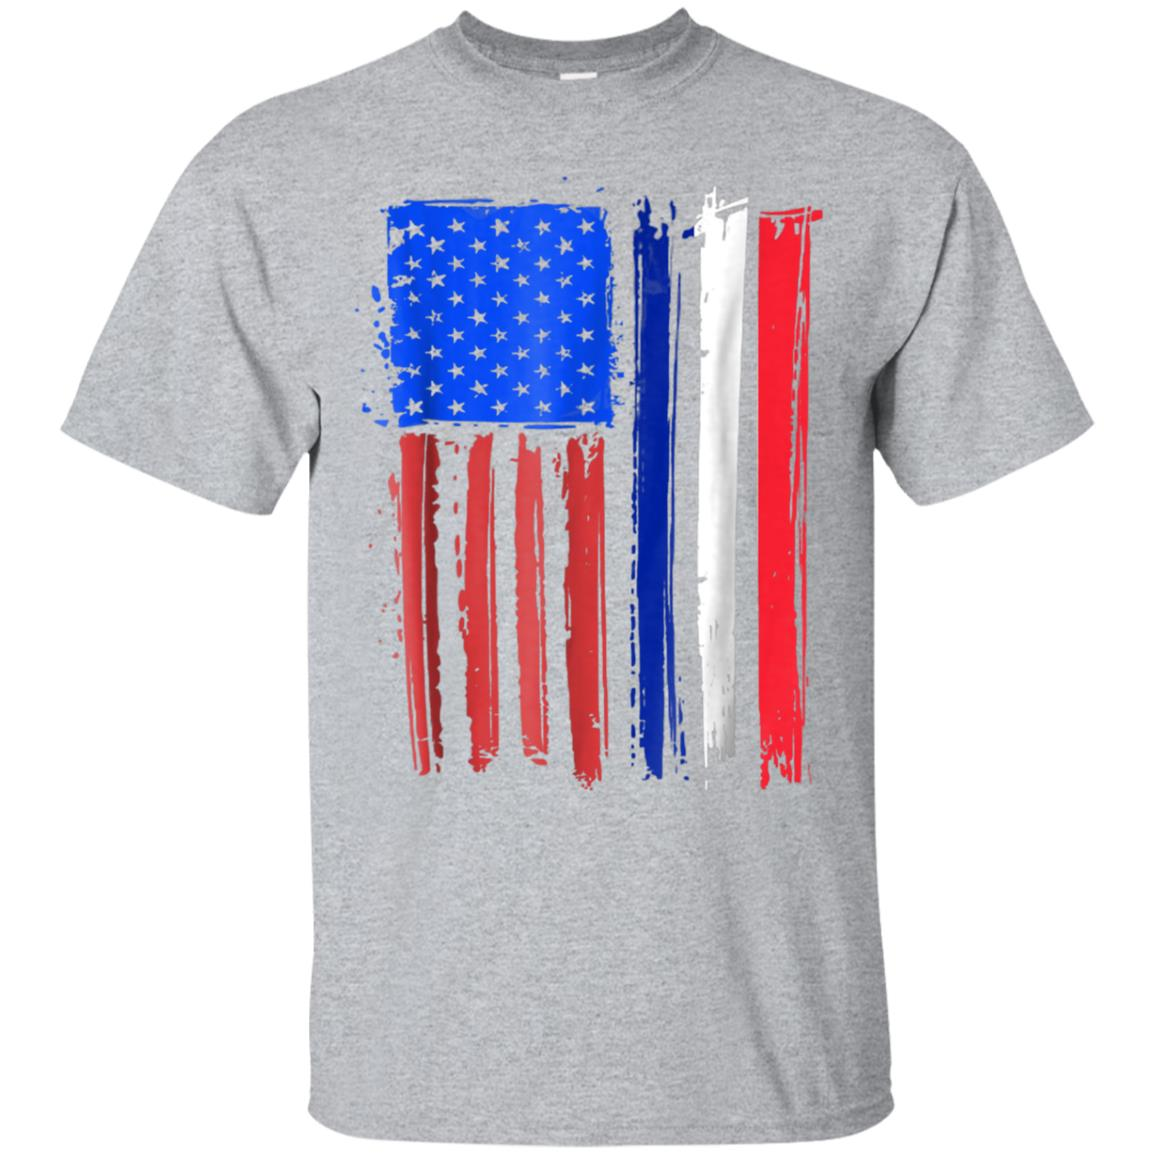 Half French American Flag Classic Patriot France T-shirt 99promocode